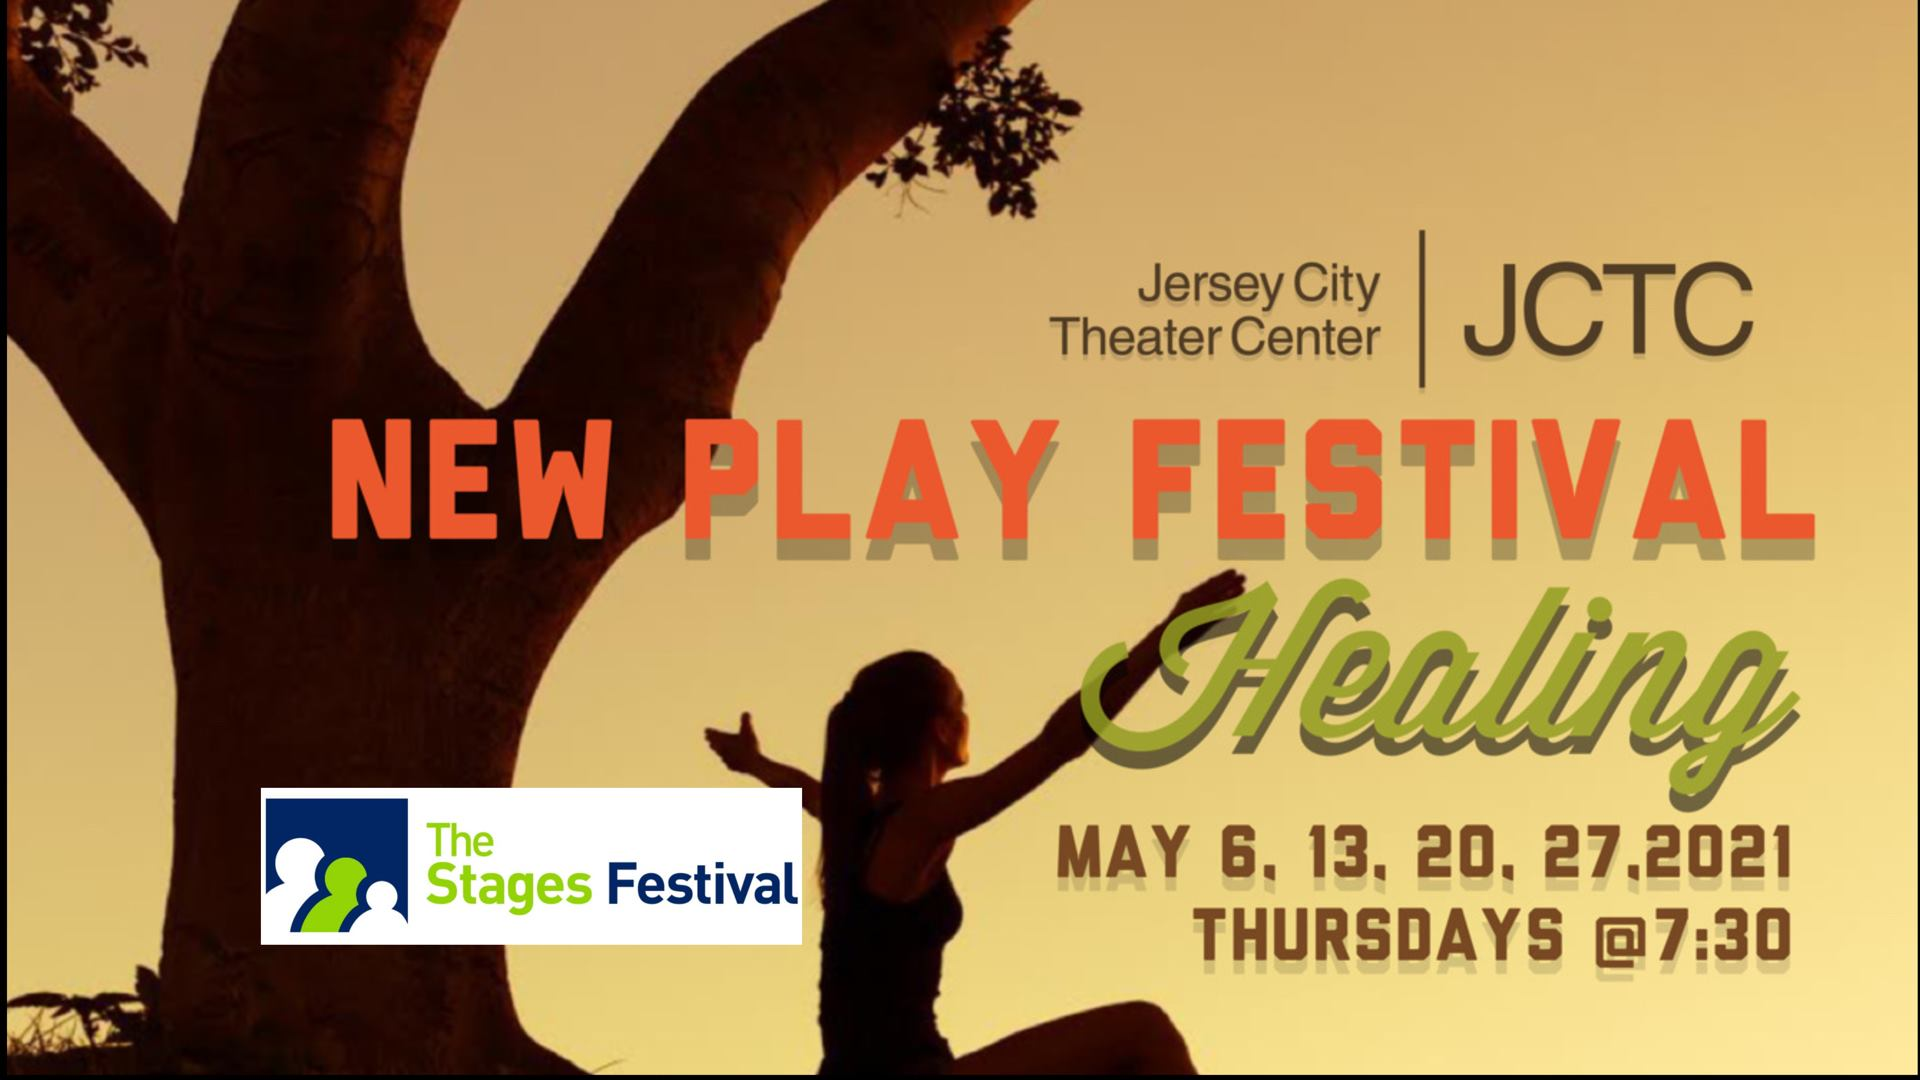 JCTC New Play Festival Flyer Moon lite yellow background with a large tree on the far left. Wordage in the center A black silhouette of a woman on the bottom.